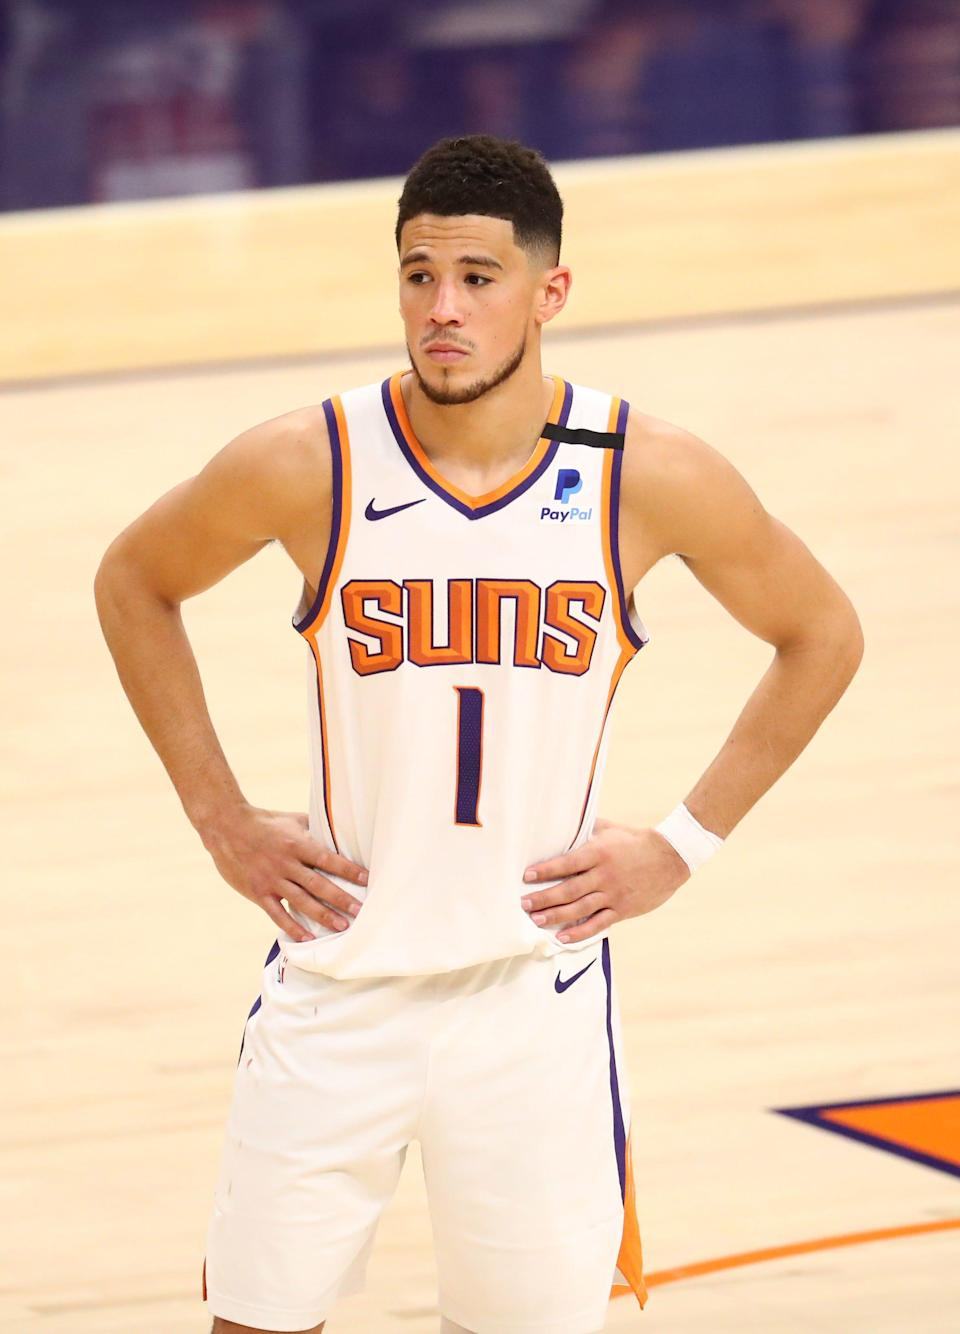 Devin Booker and the Suns open the 2021-22 season on Oct. 20.